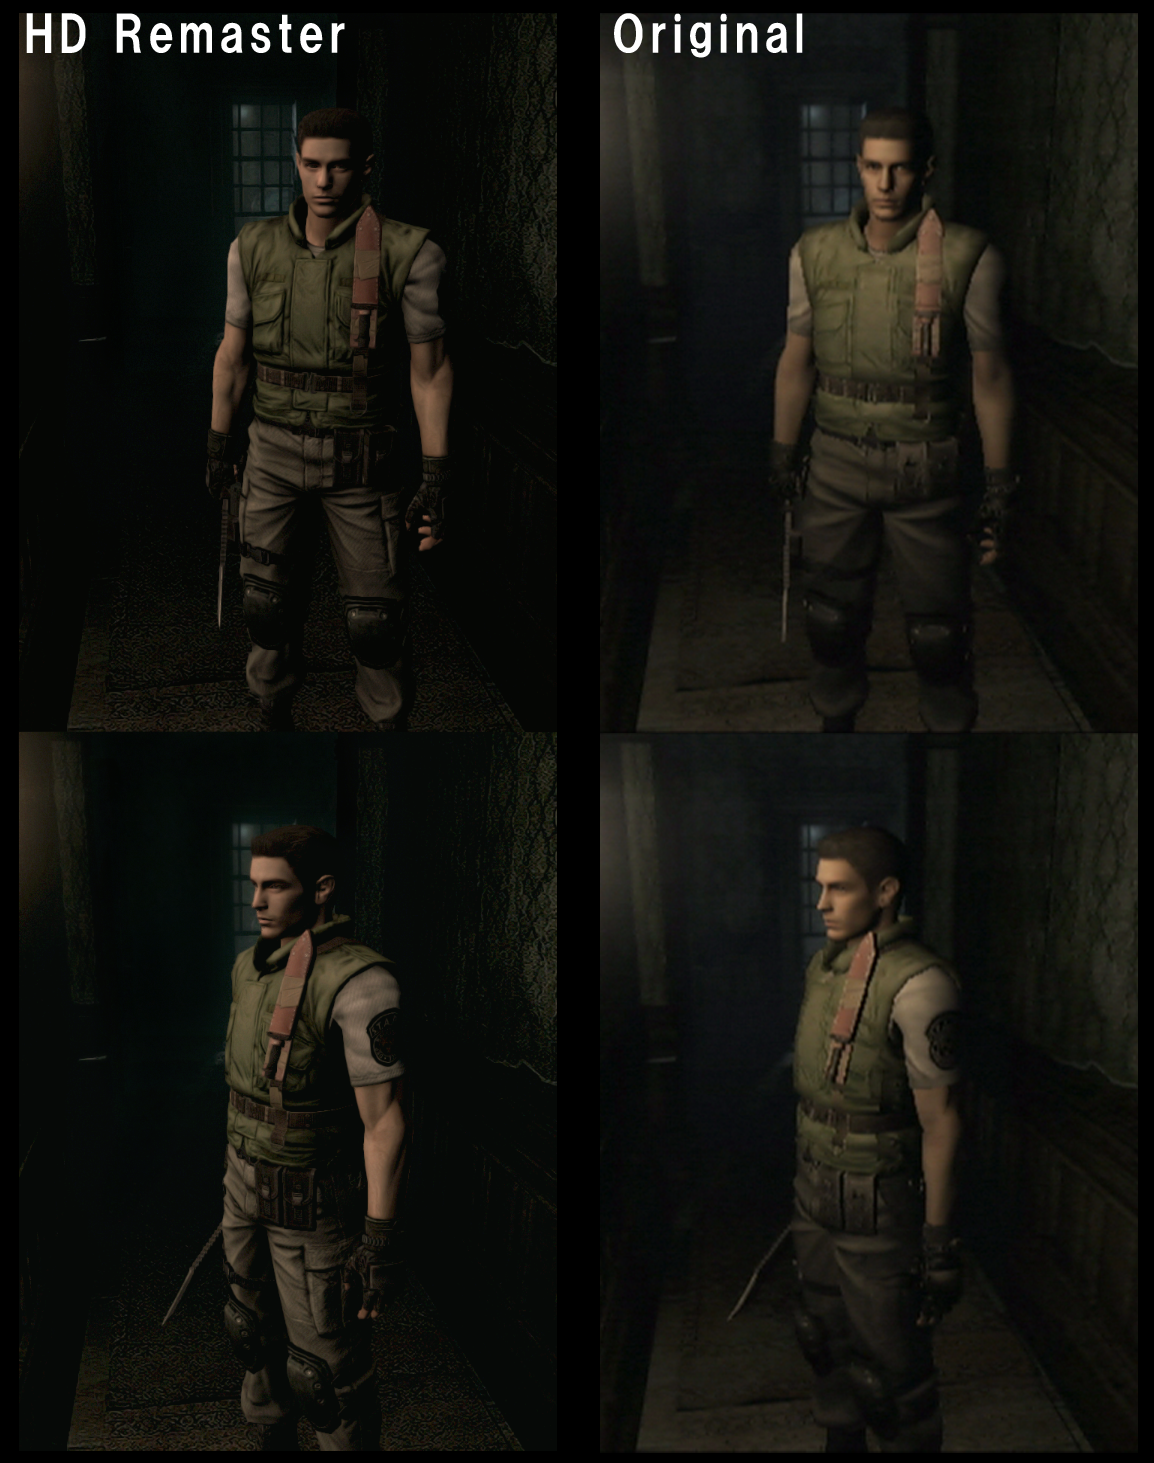 resident-evil-1-getting-remastered-re-release-on-pc-ps3-ps4-xbox-360-and-xbox-one-140723334035